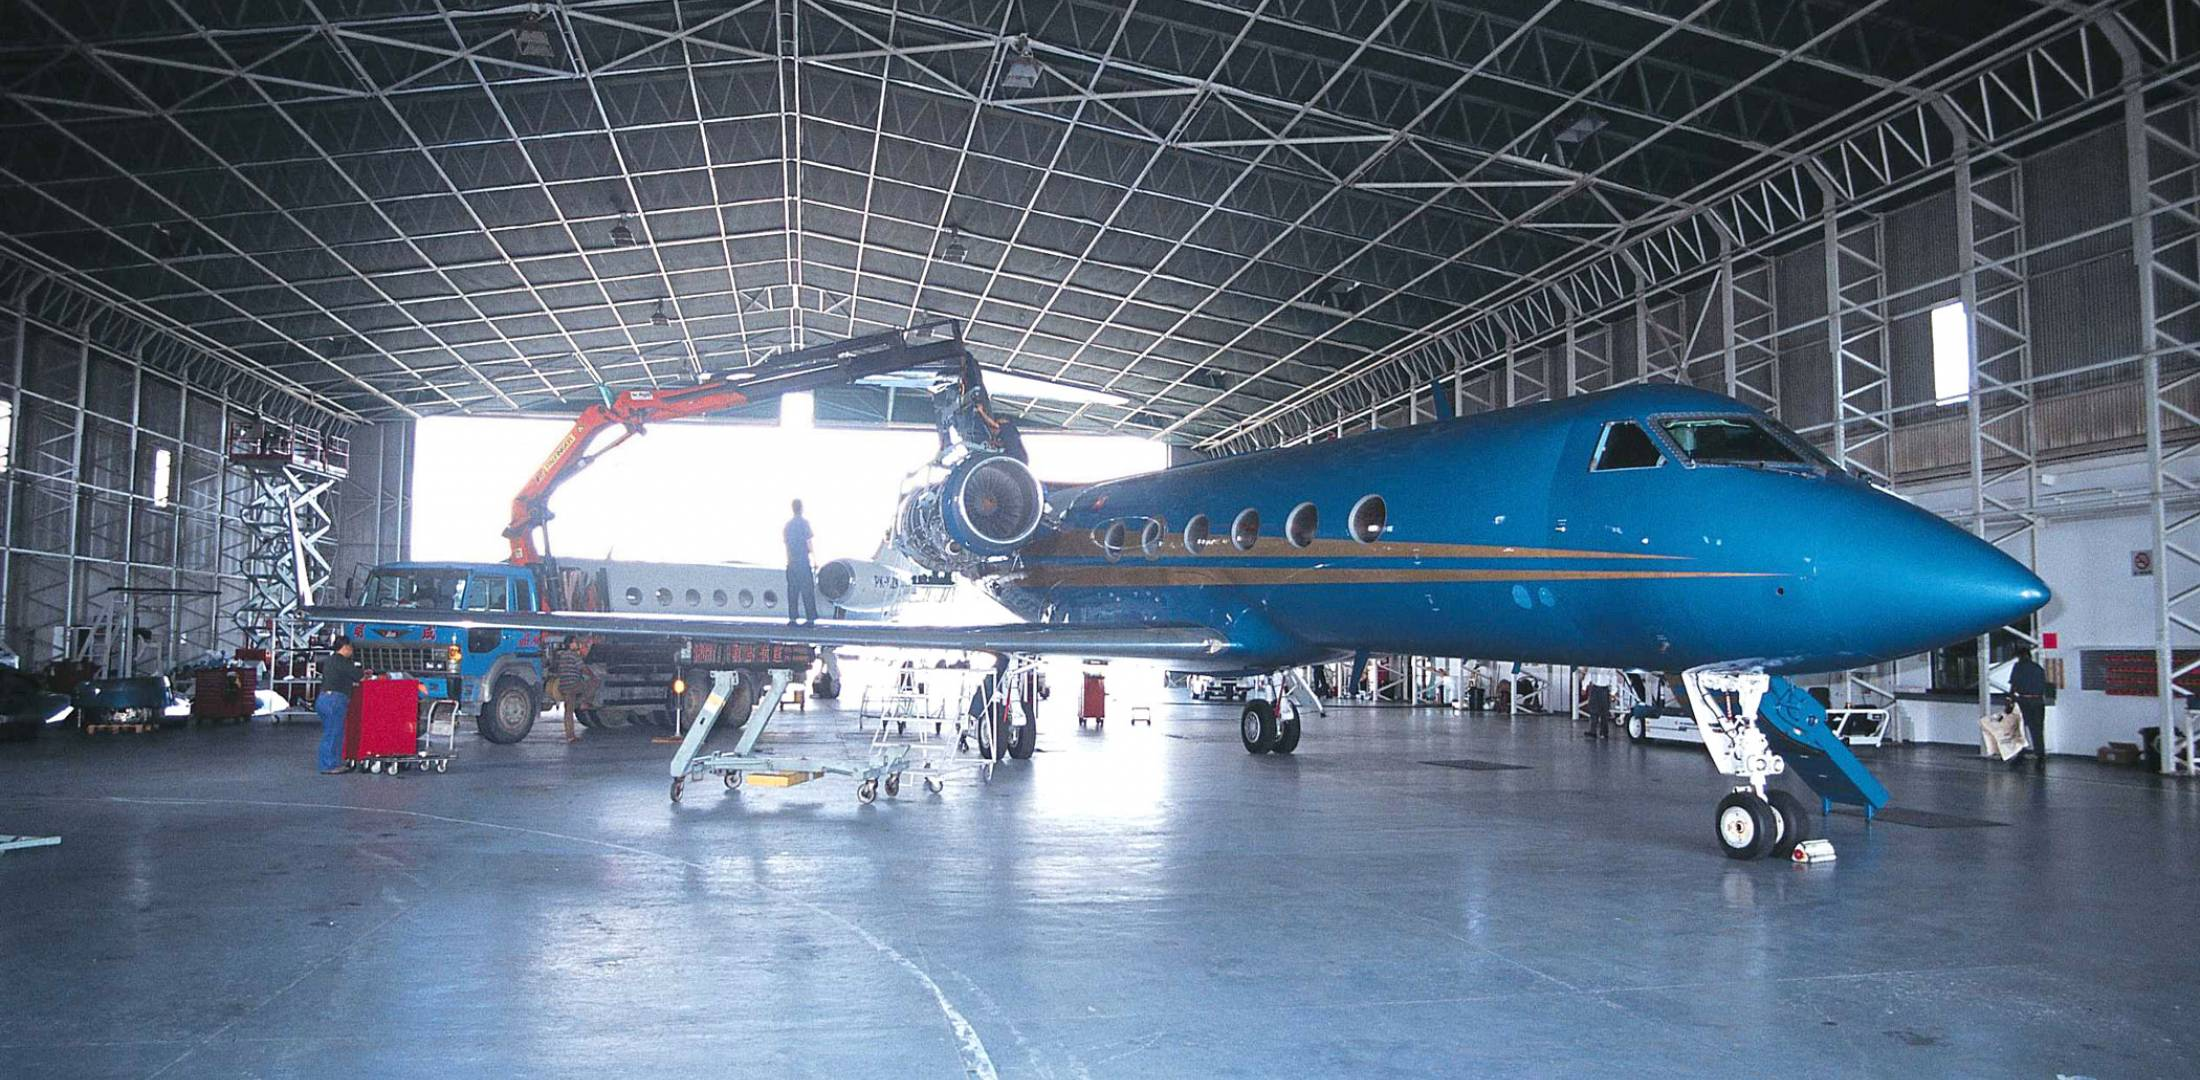 Directing resources to supporting and upgrading its older GIV and GV models, Gulfstream is showing operators it intends to keep them operating safely and productively through at least 2030. Not unexpectedly, much of the refreshment work involves avionics.